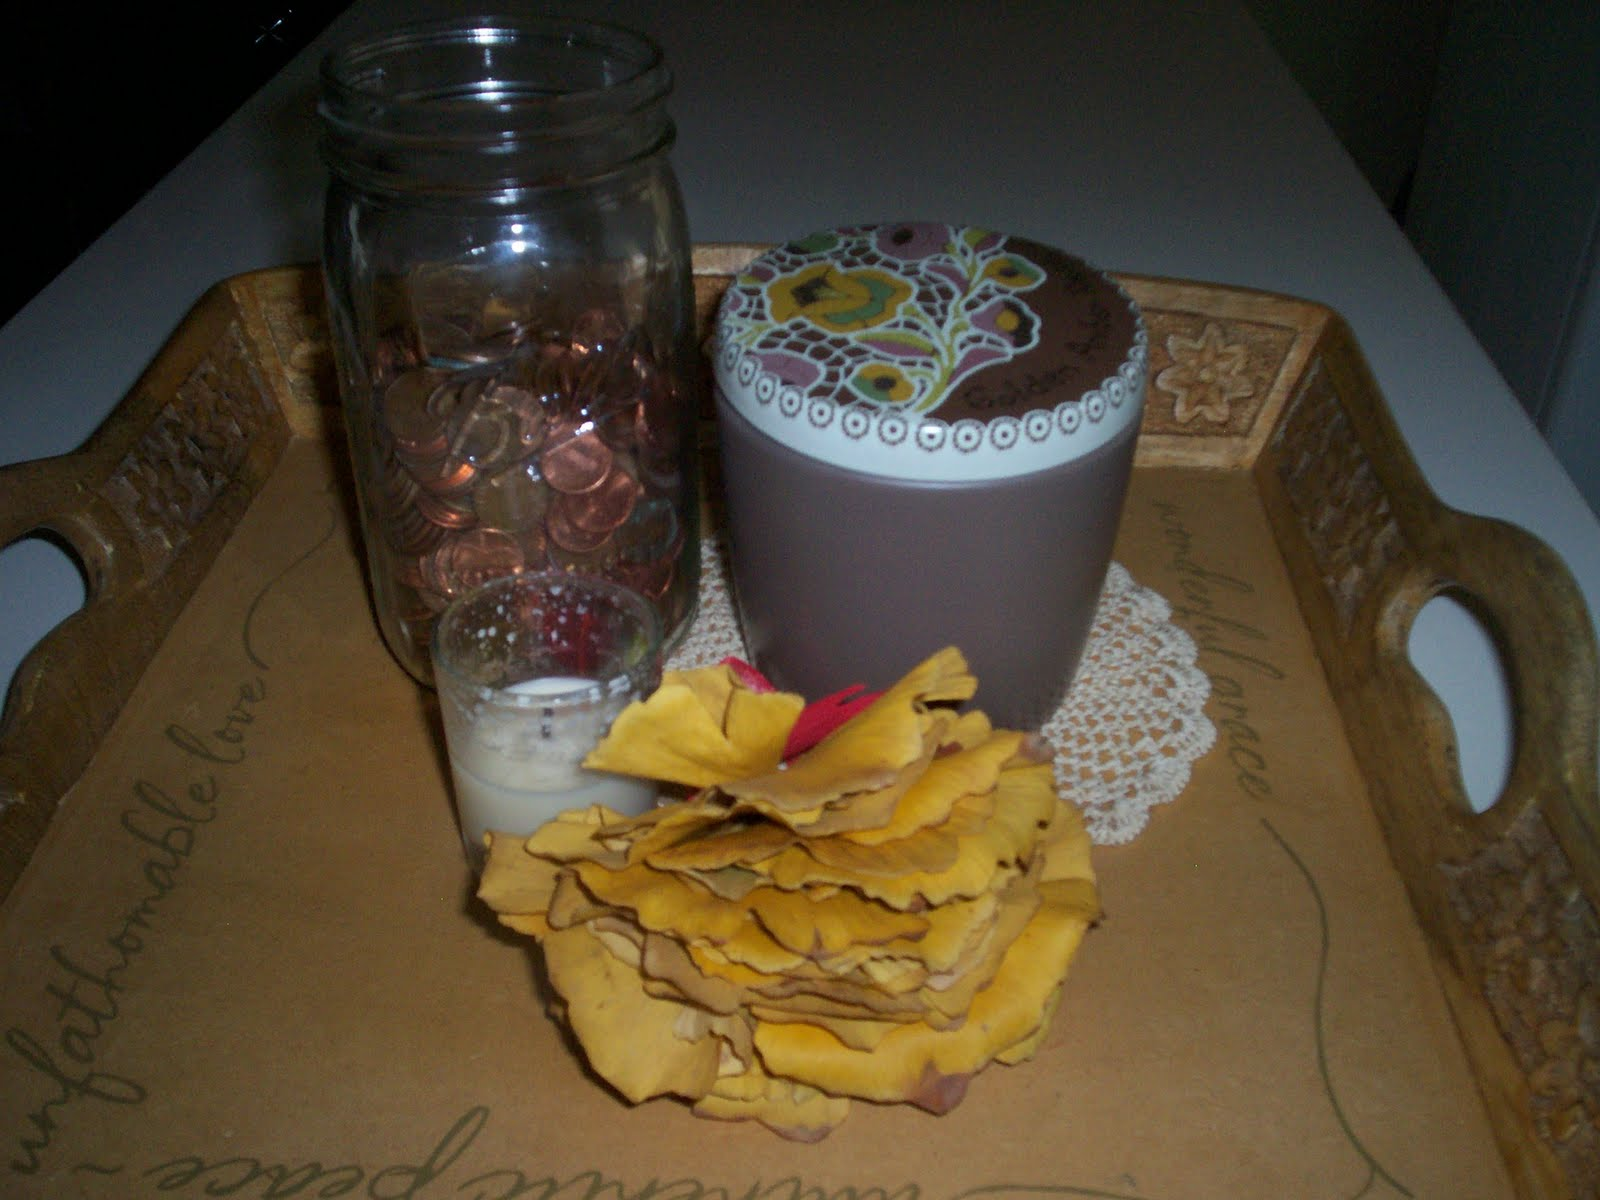 Leigh kramer i started with a ball jar that collects pennies then i added the anthro candle a votive and the dried gingko leaves from last fandeluxe Images